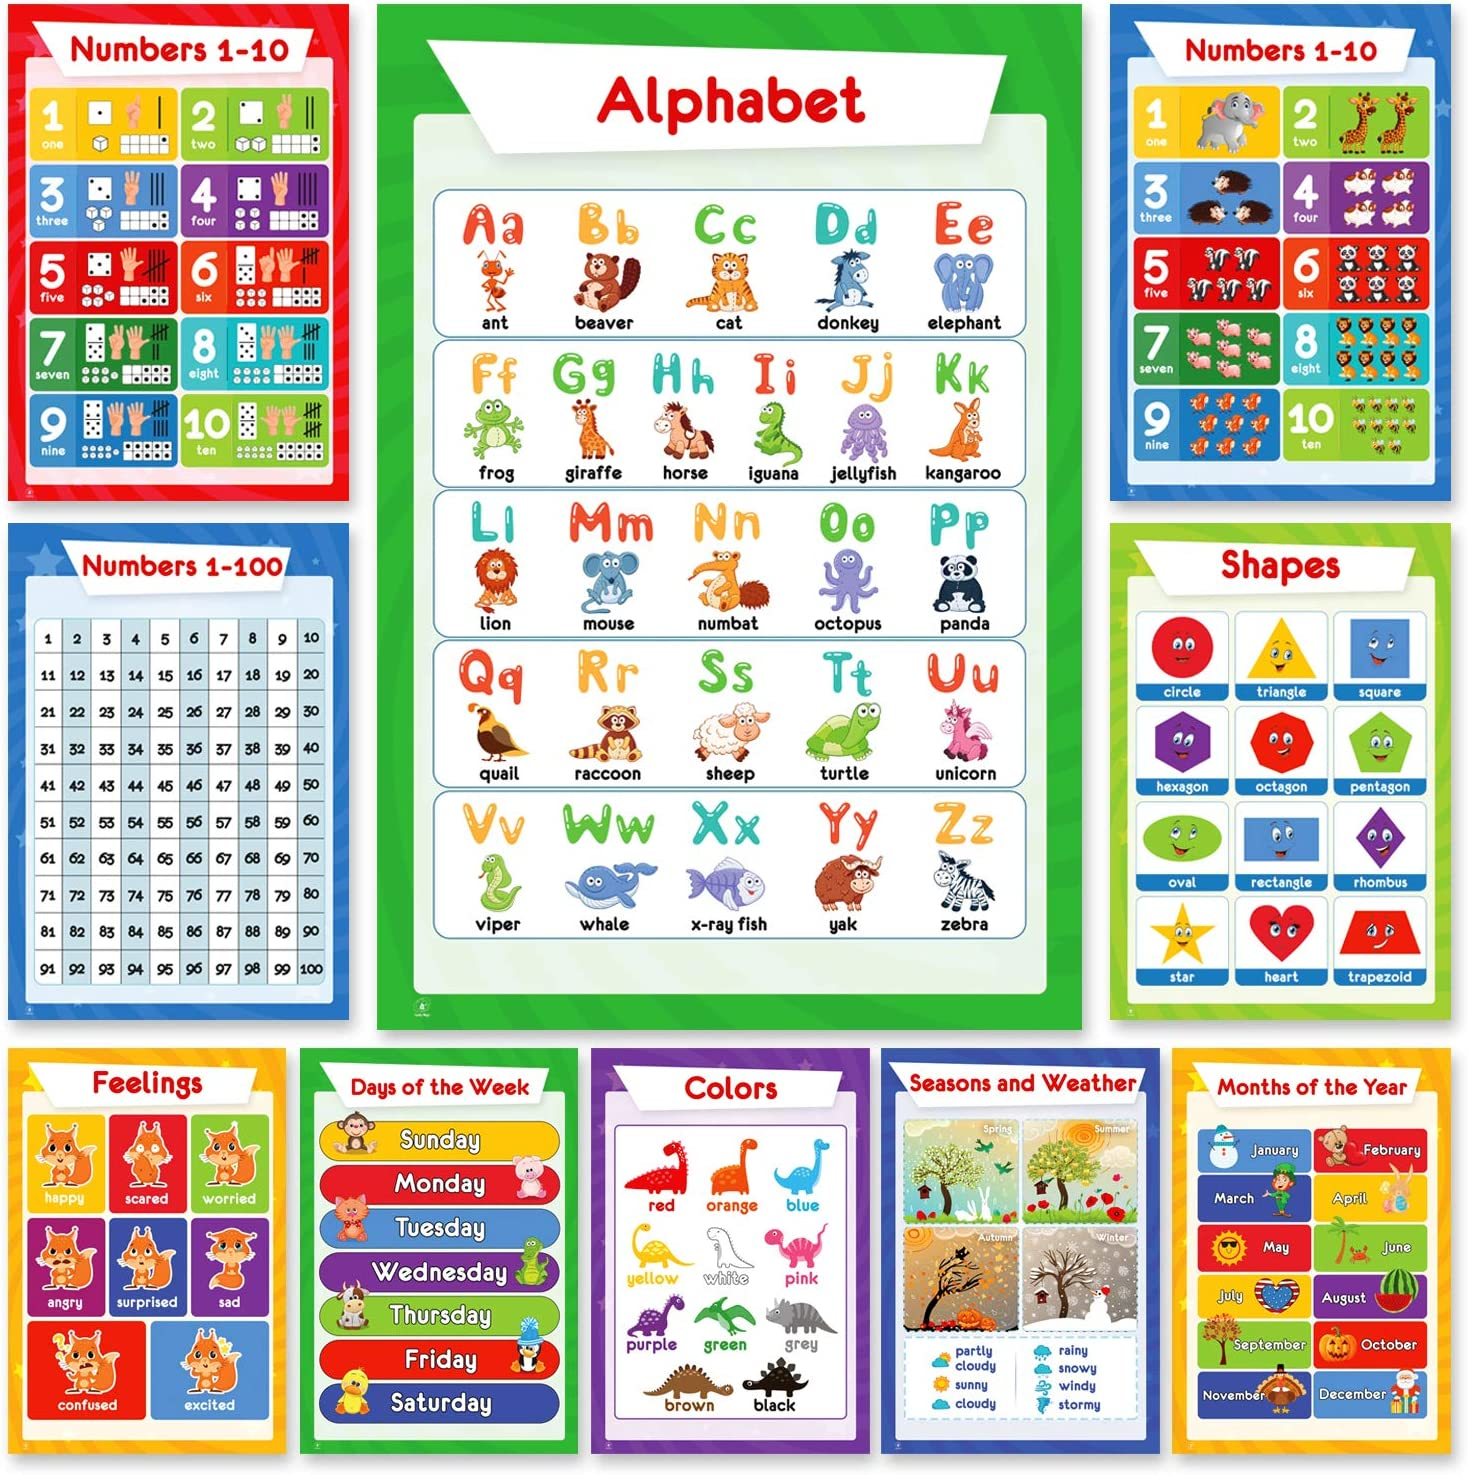 11 Educational Posters for Toddlers, Kids - Homeschool Supplies, Perfect for Children Preschool & Kindergarten Classroom Decorations: Alphabet ABC Poster, Numbers, Weather Chart, Shapes, Colors, 13x19